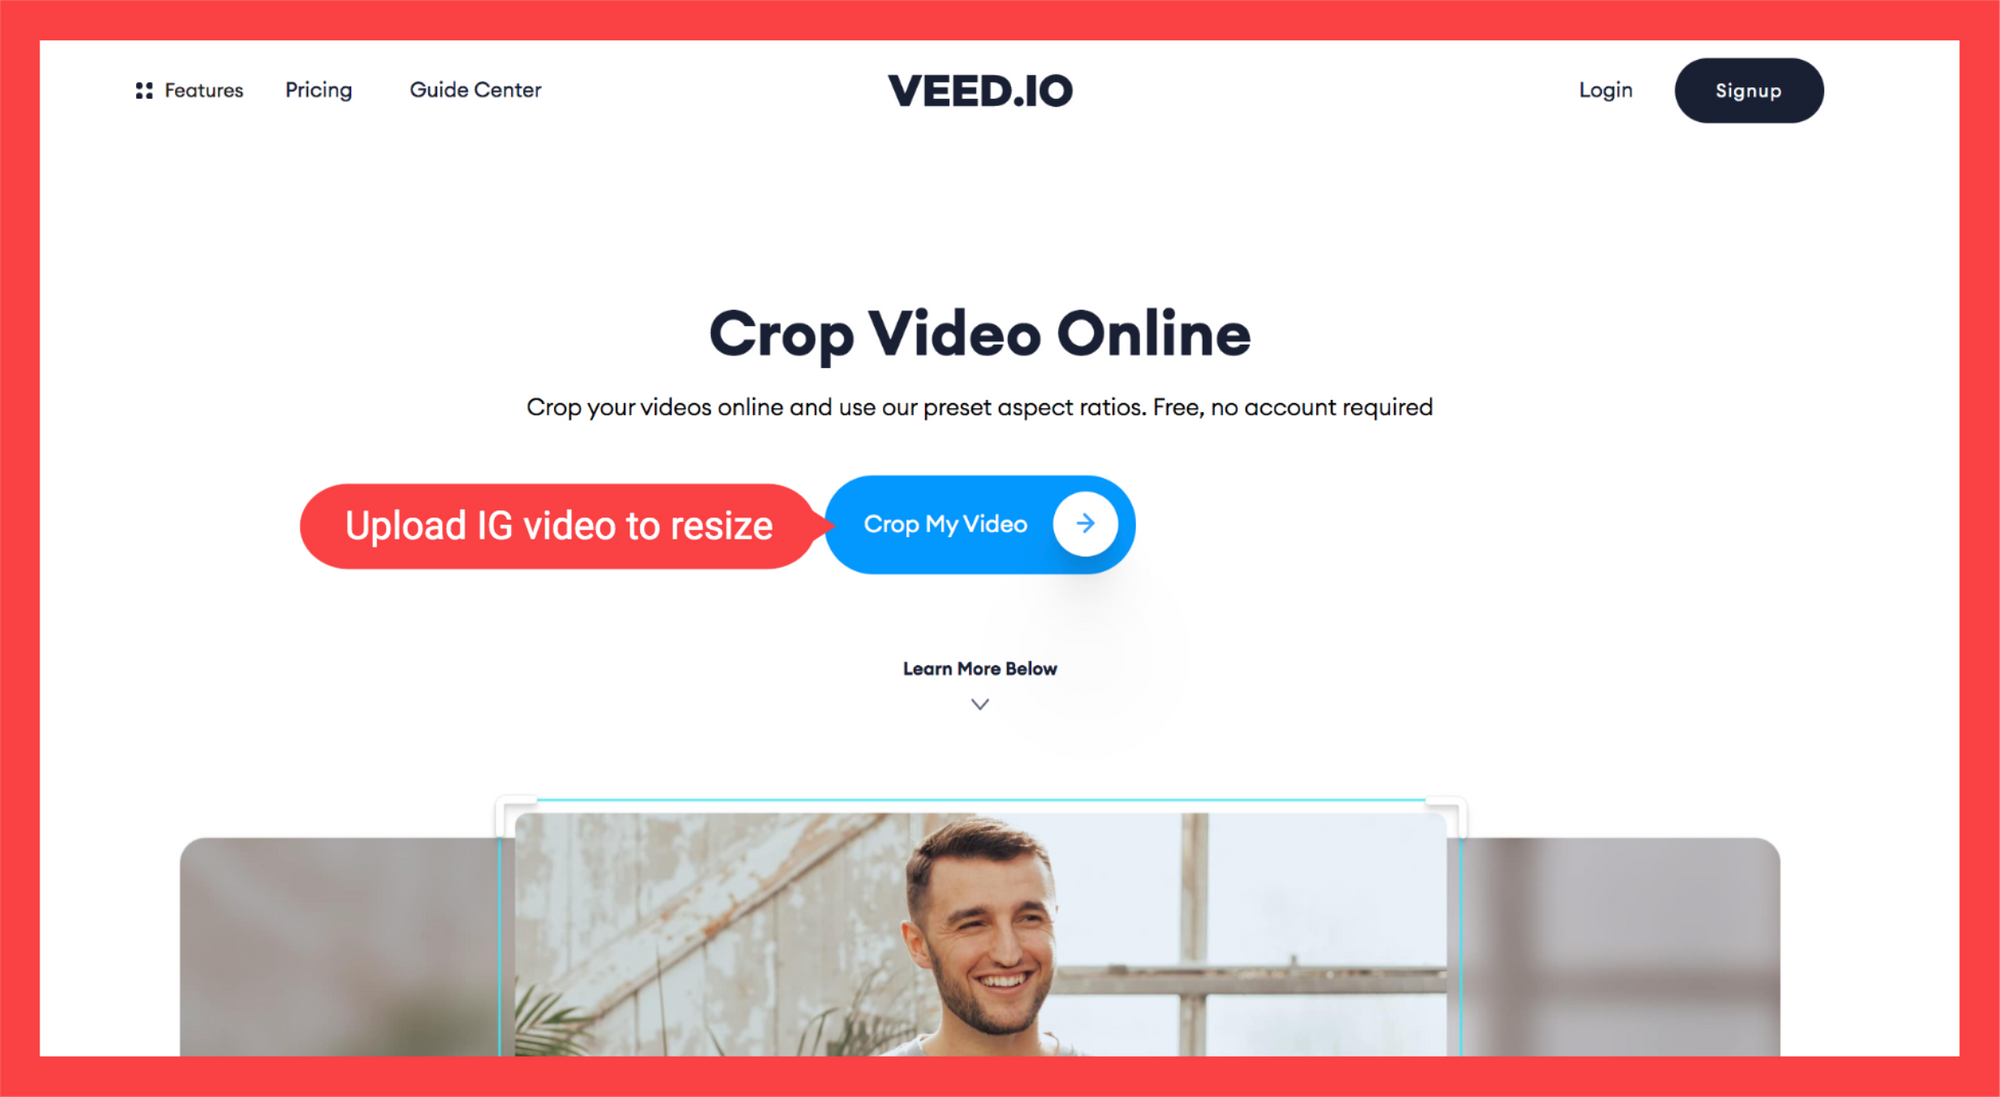 landing page for video cropping tool. White background with blue button and image of man inside a video frame.